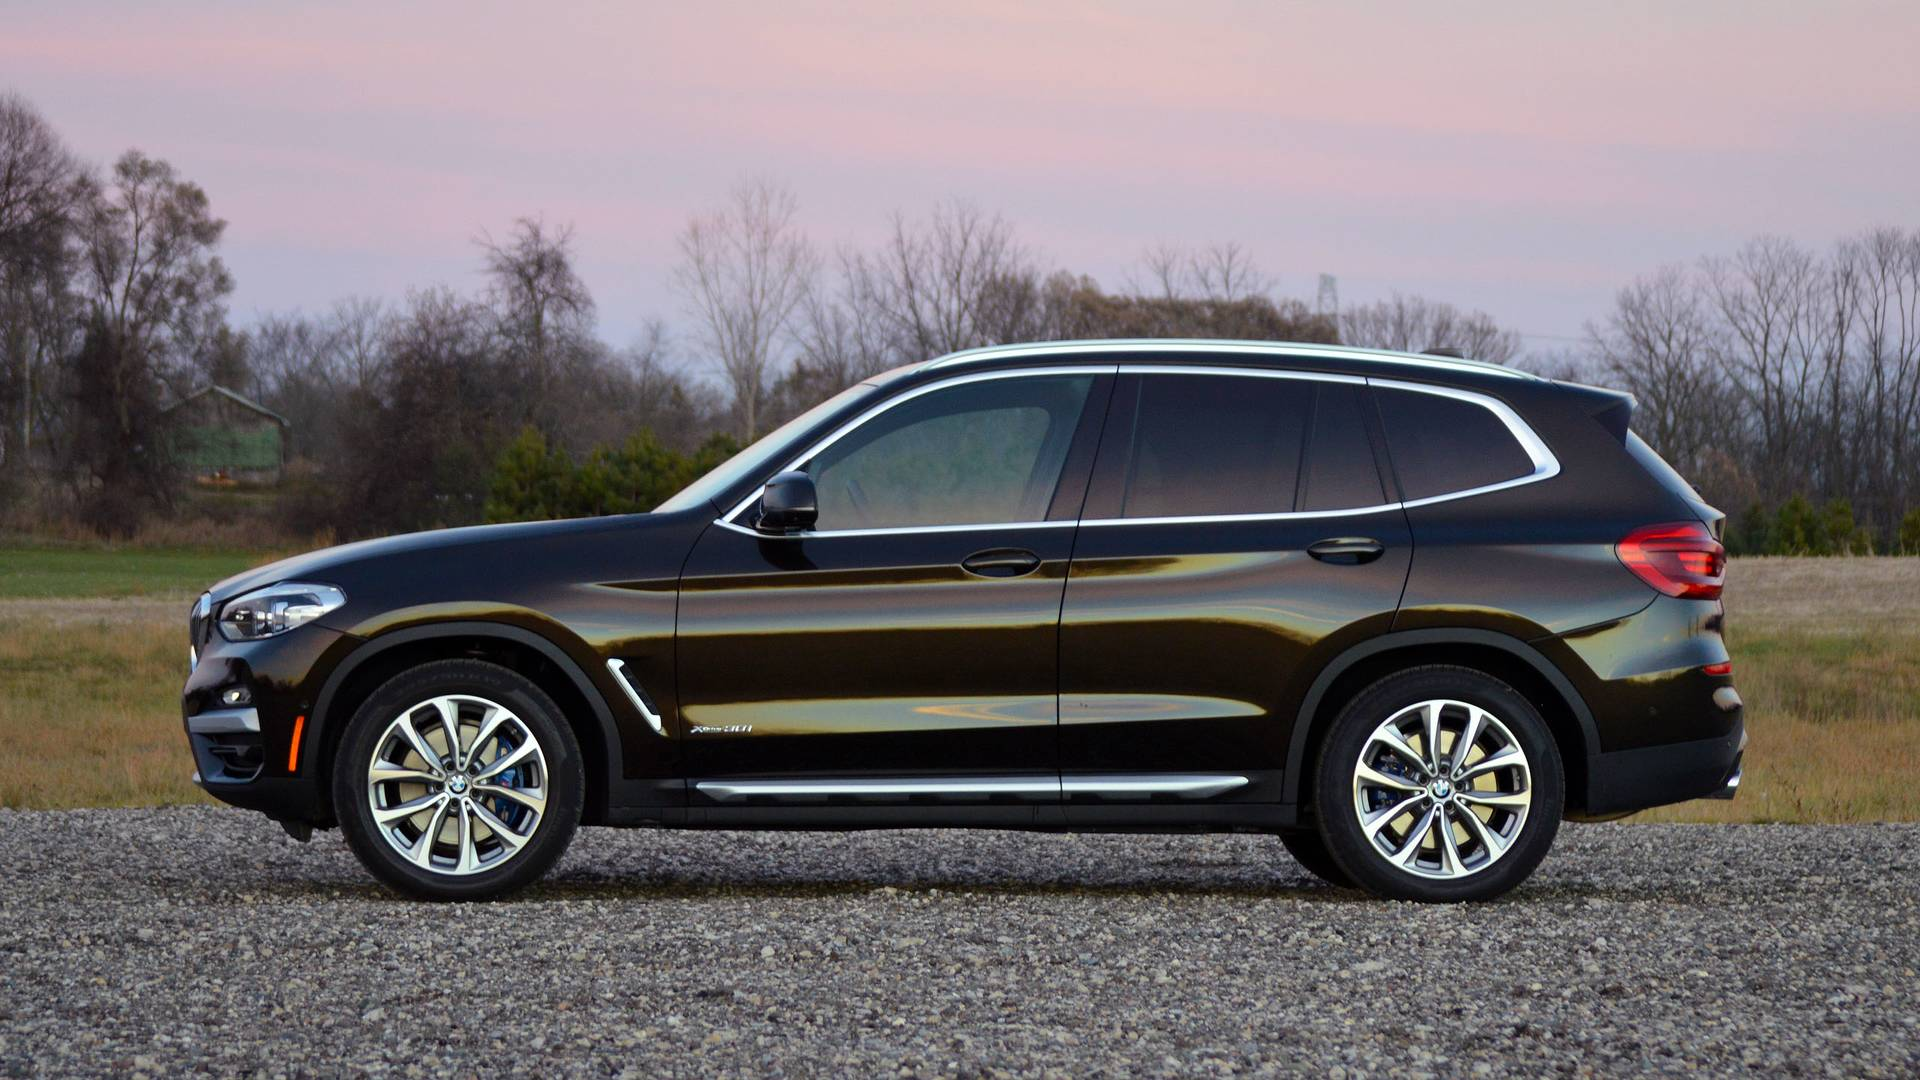 2018 BMW X3 Review The Lux CUV Segment Gets Deeper